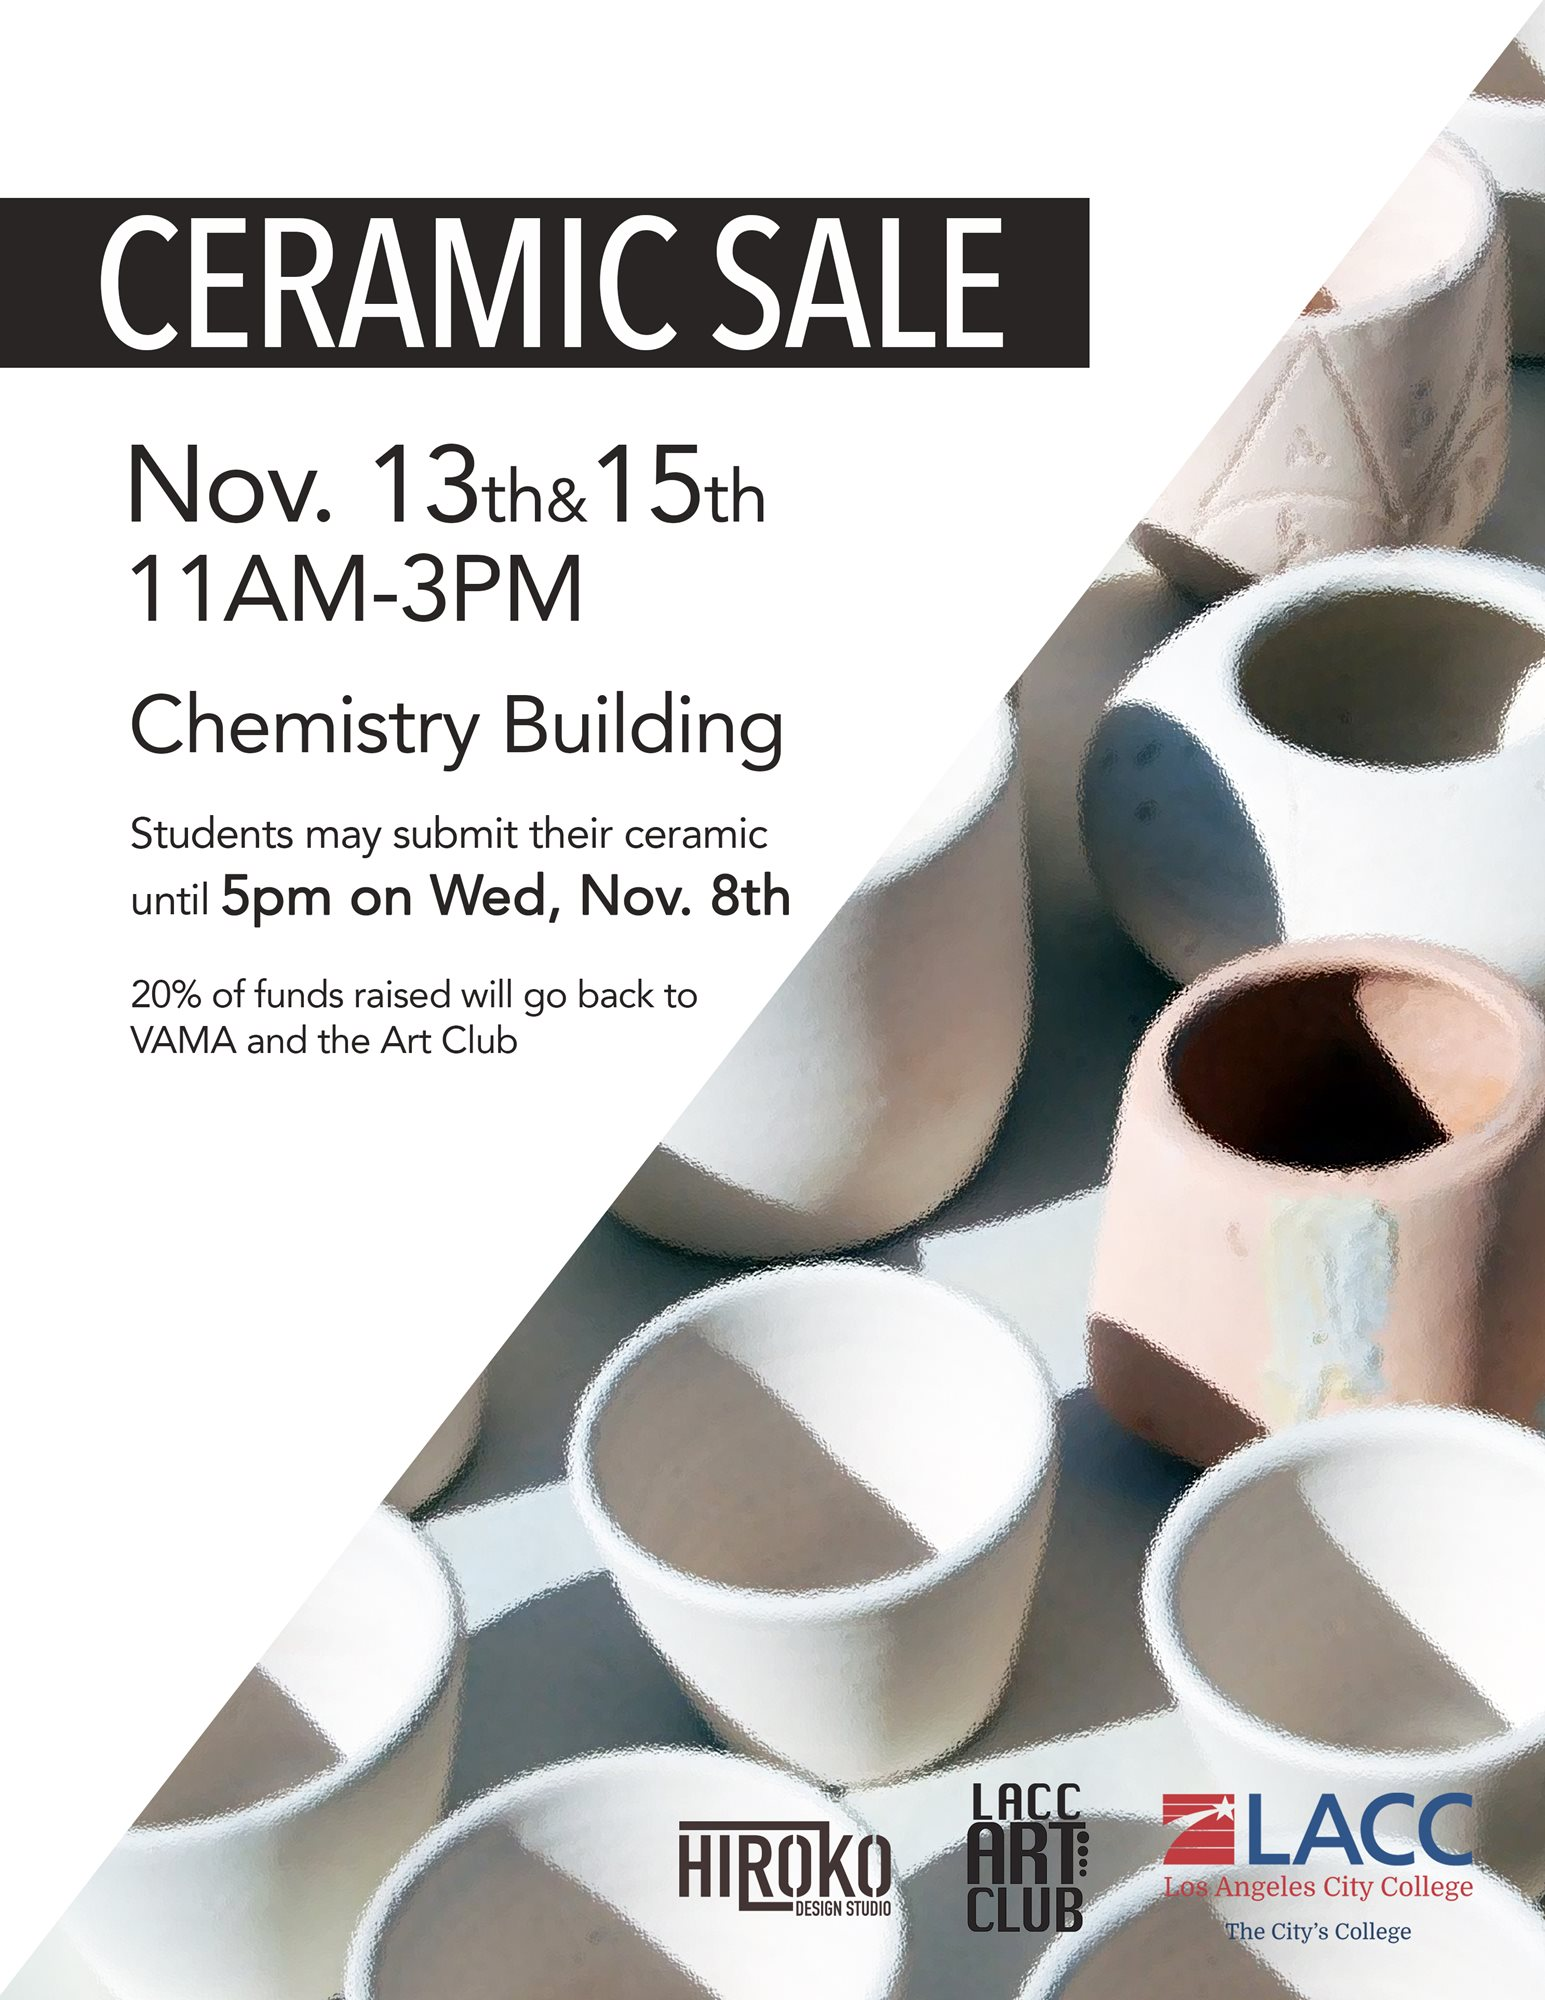 Ceramic Sale Poster - November 13 and 14, 11am to 3pm Chemistry Building